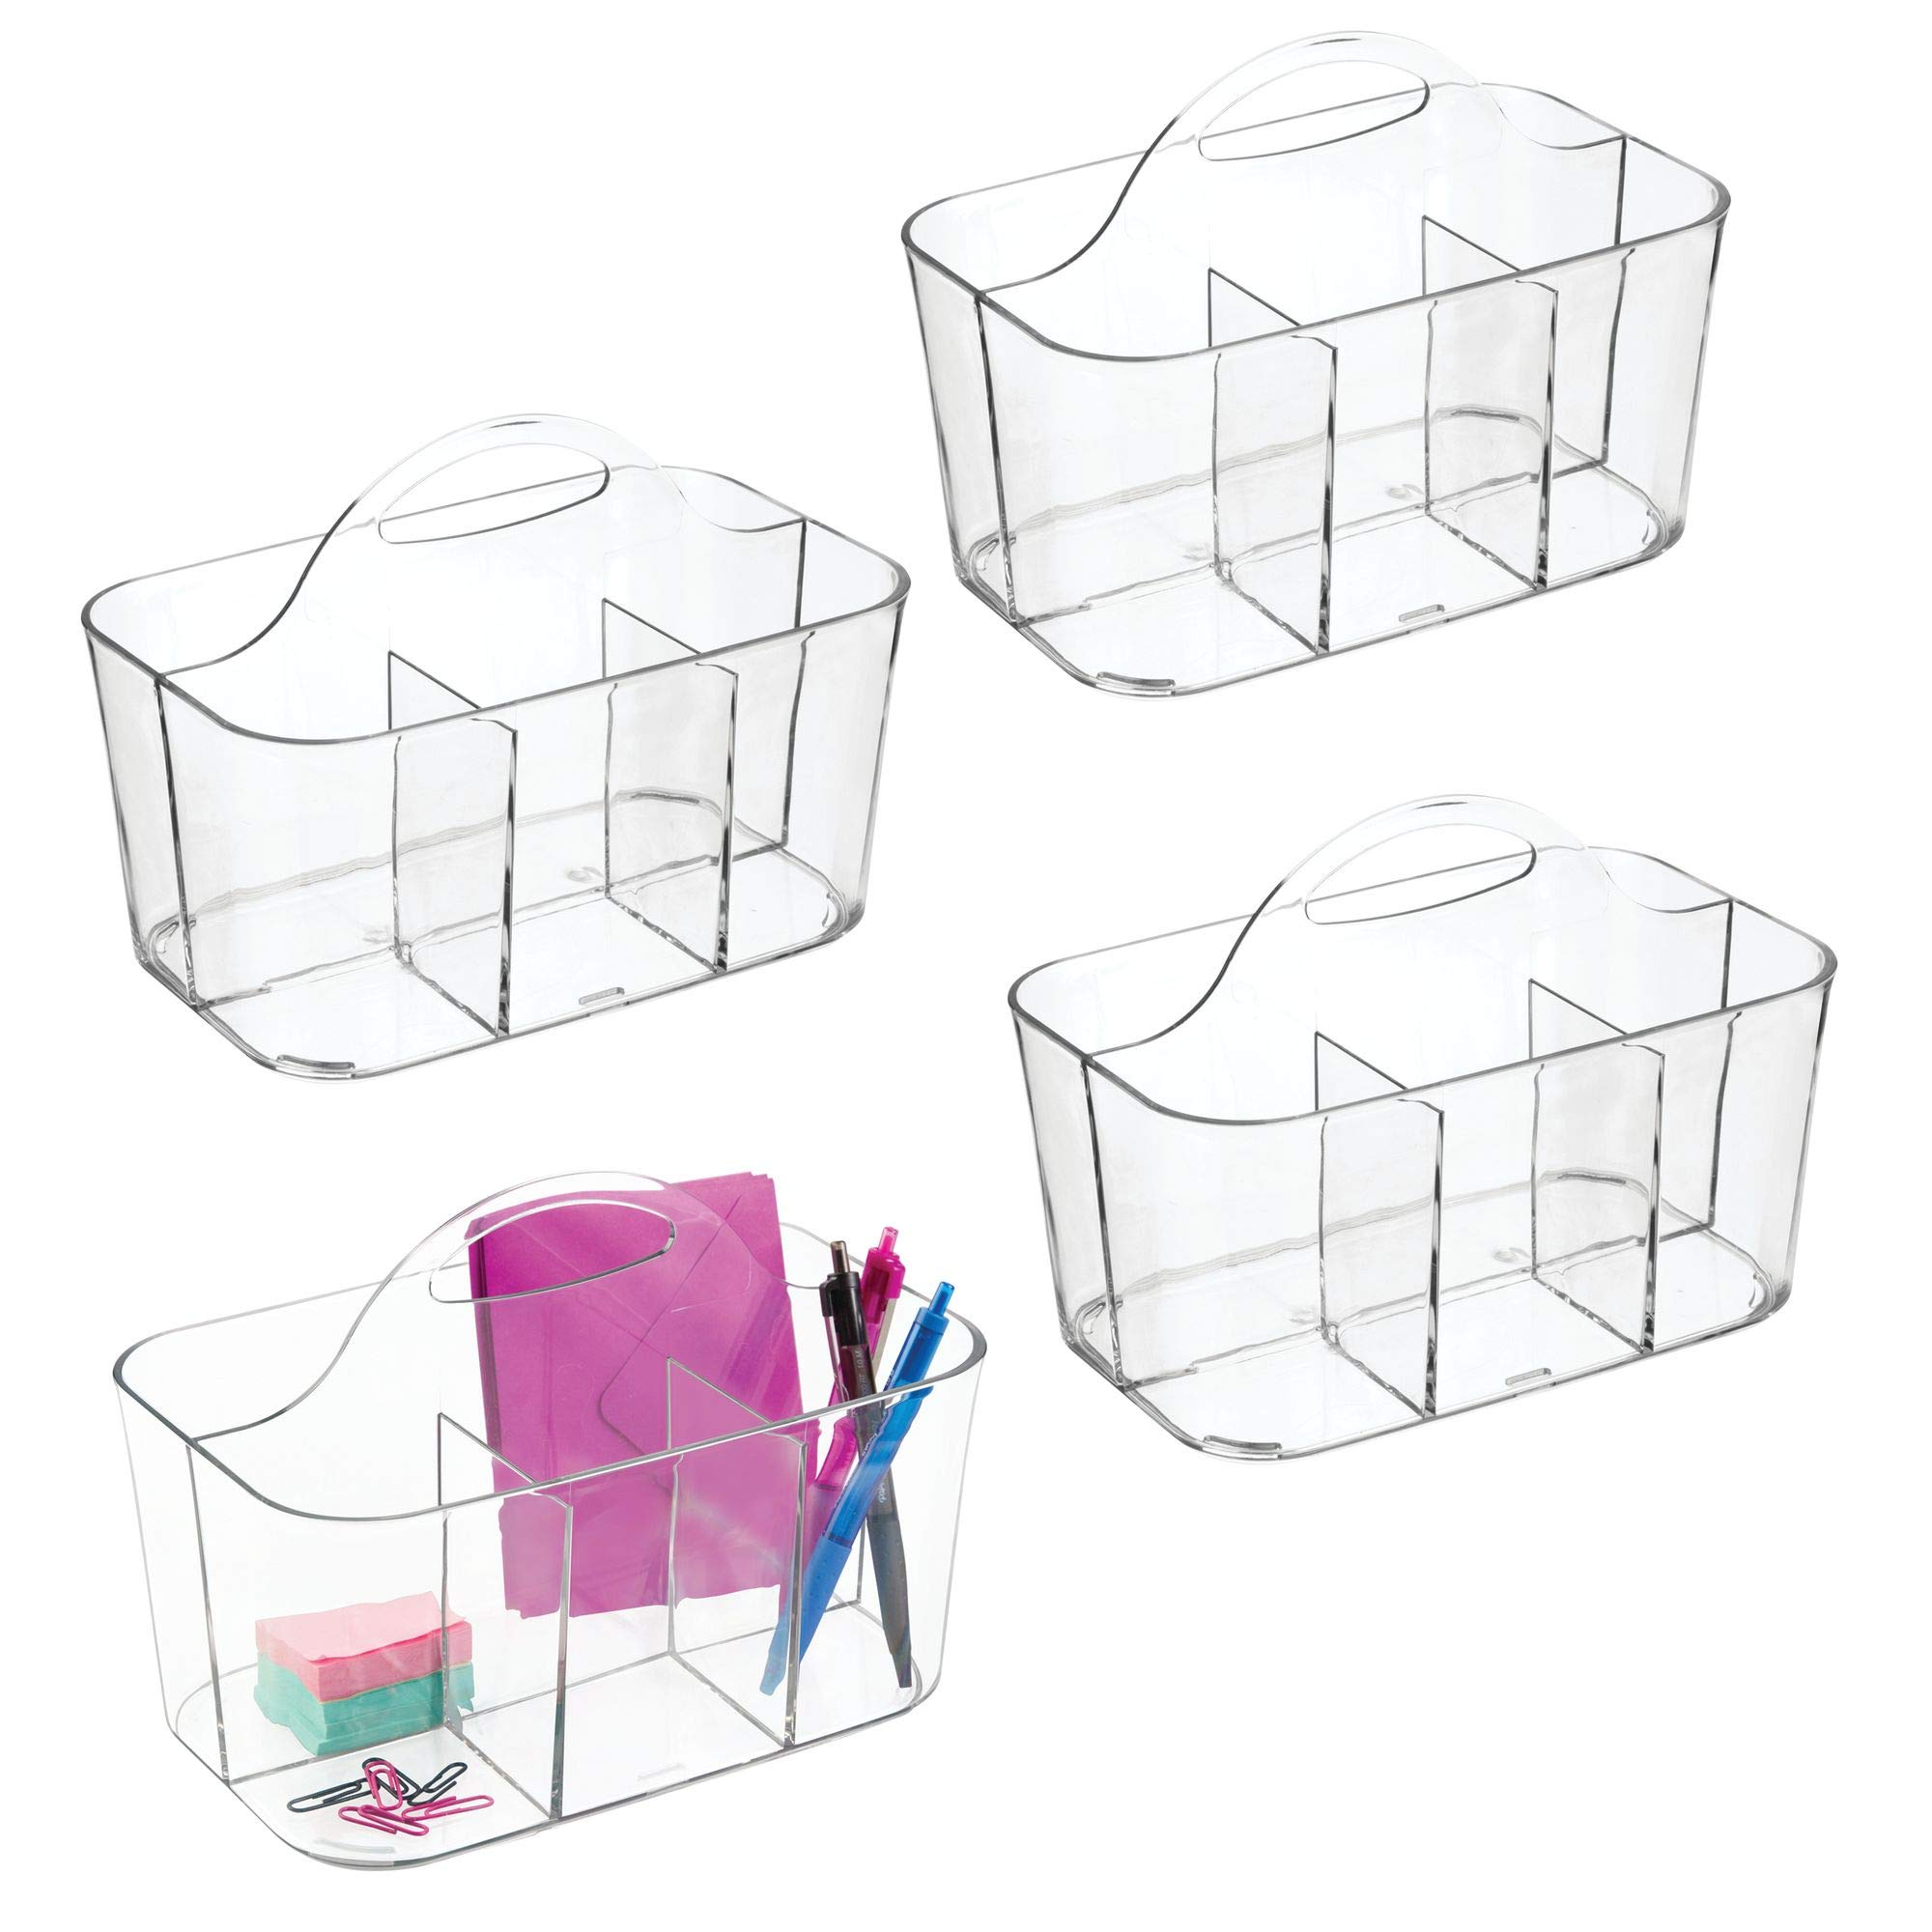 mDesign Office Supplies Desk Organizer Tote for Stapler, Pens, Pencils, Notebooks - Pack of 4, Small, Clear